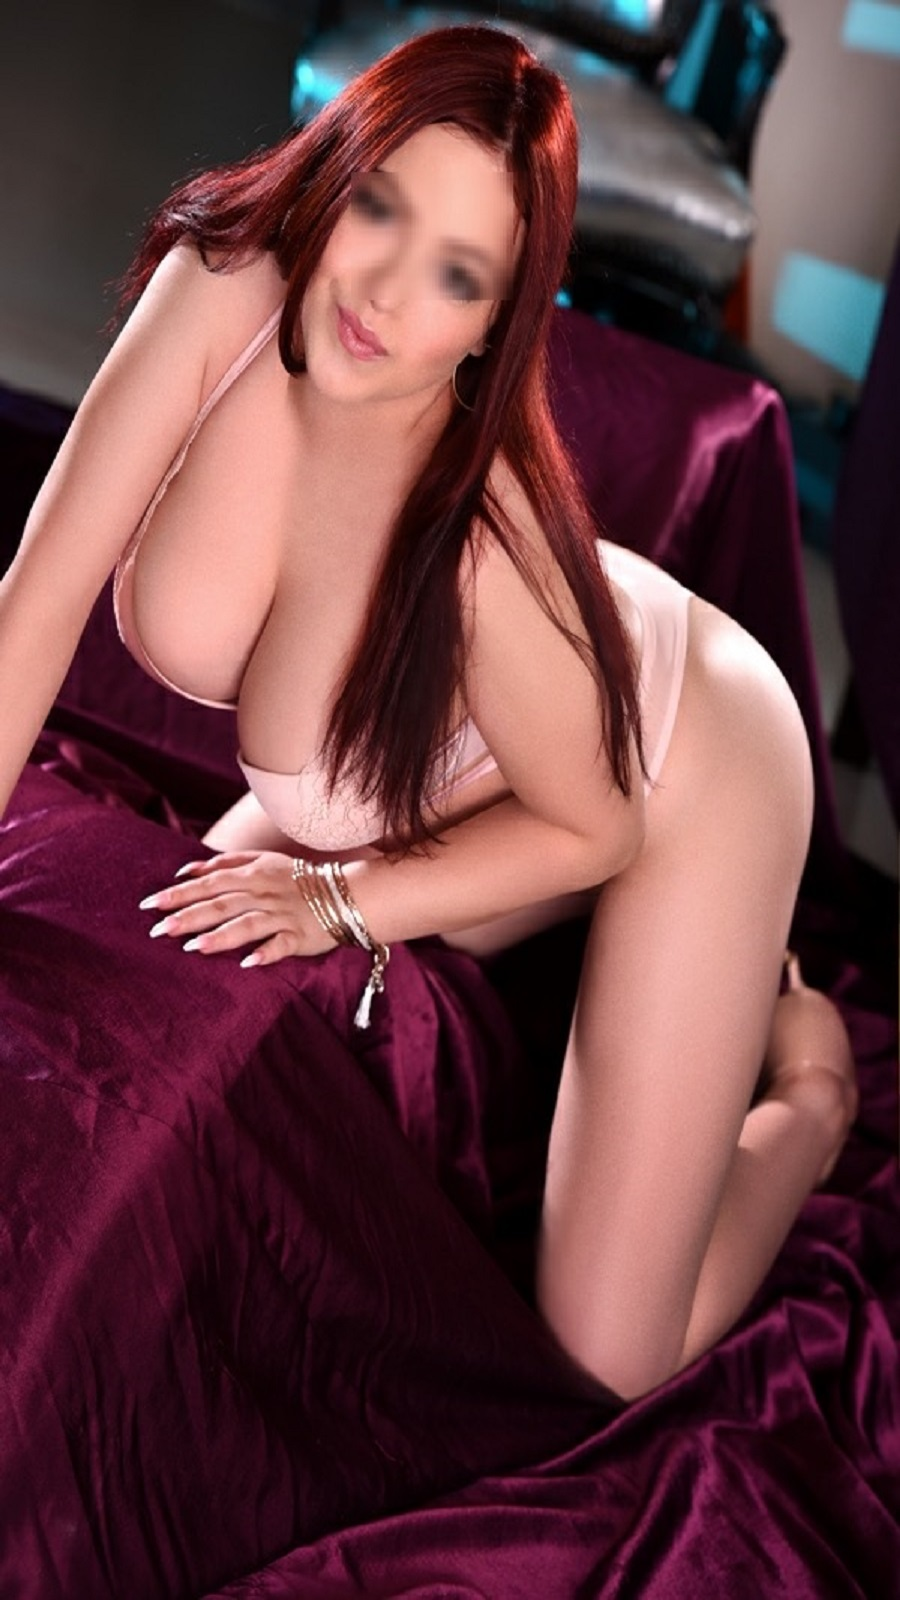 If you are looking for the perfect companion tonight give us a call on 07402724742 to book Ariana for the best night of your life.